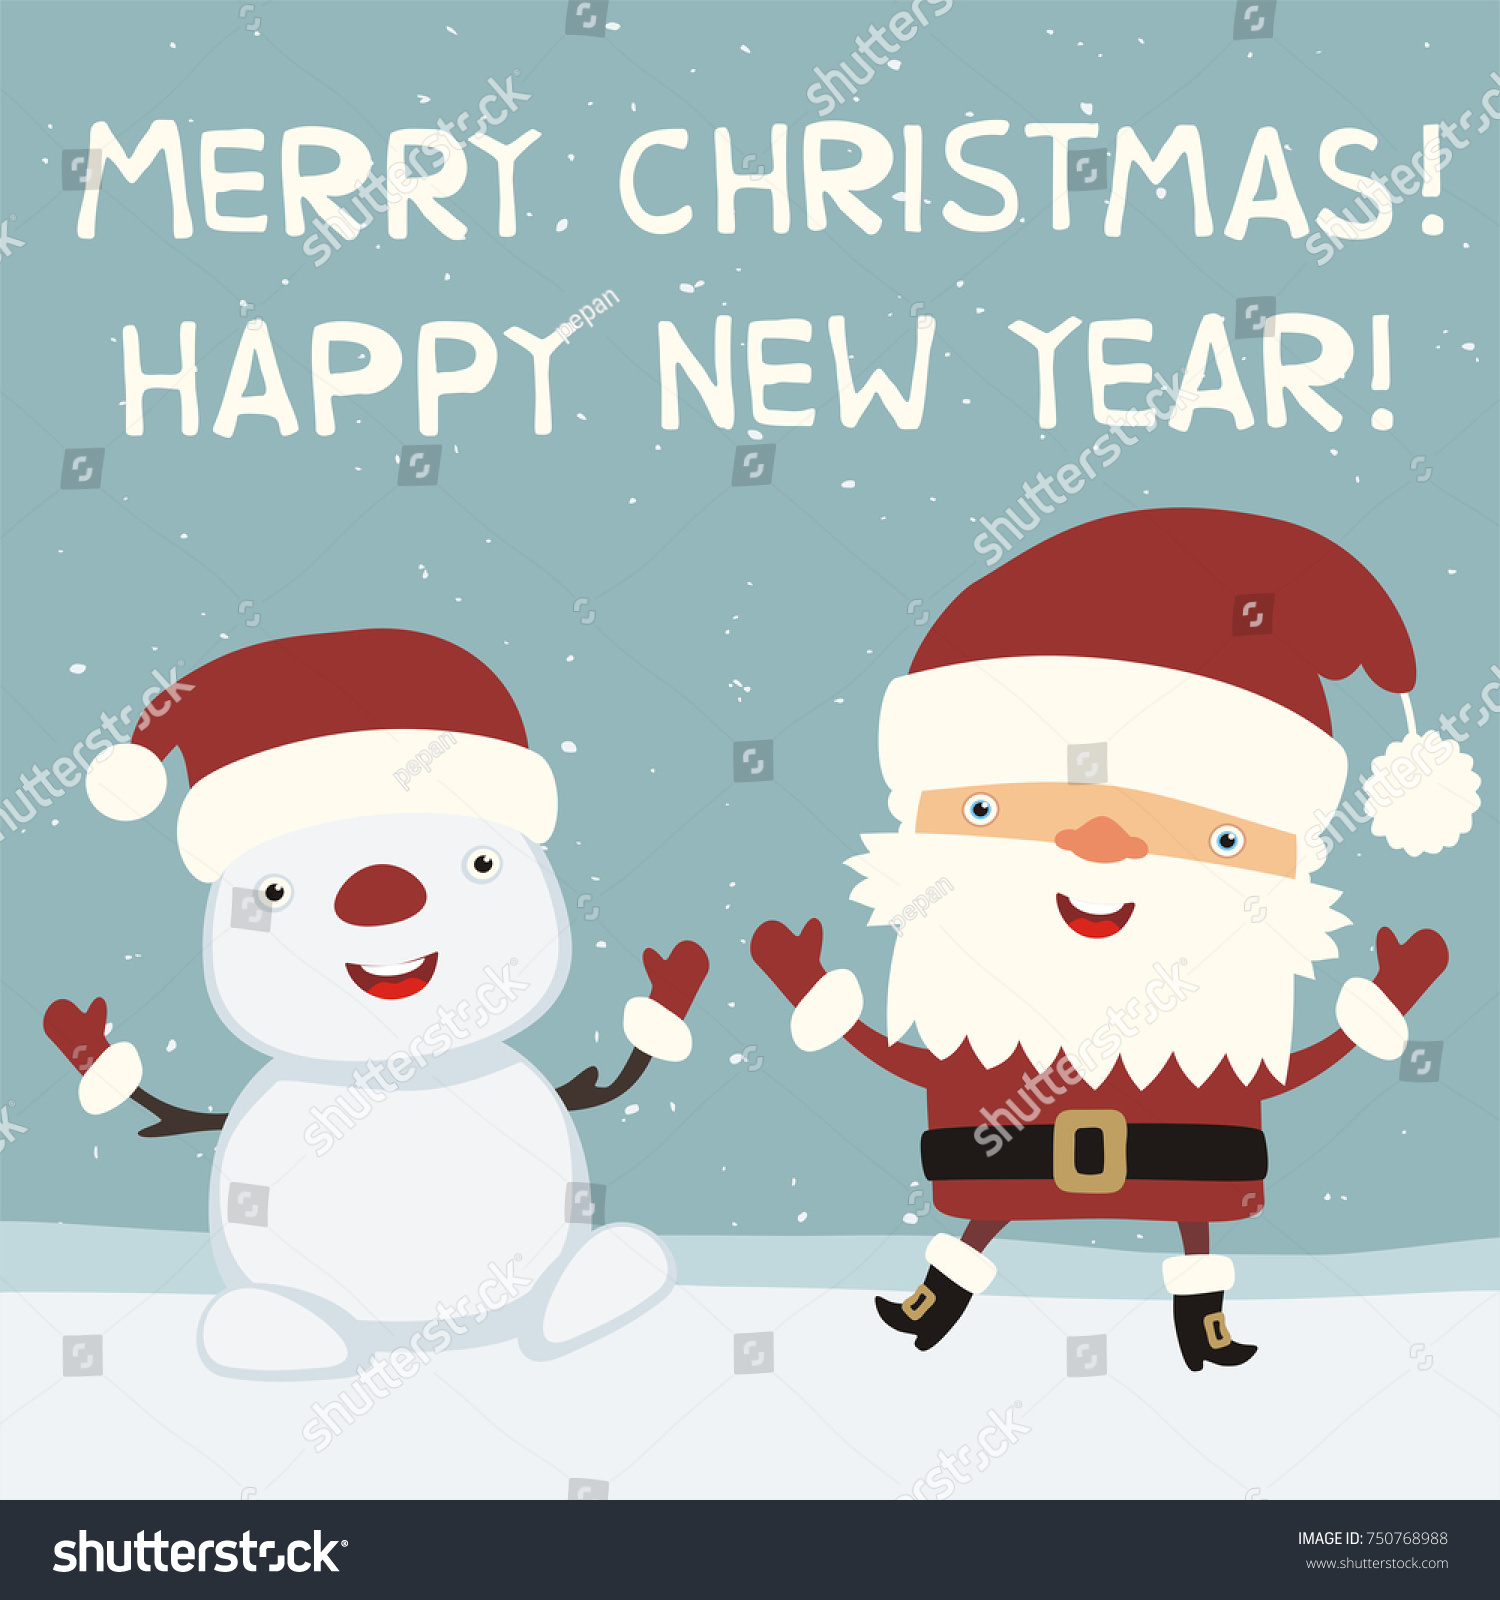 Merry Christmas Happy New Year Funny Stock Vector ...